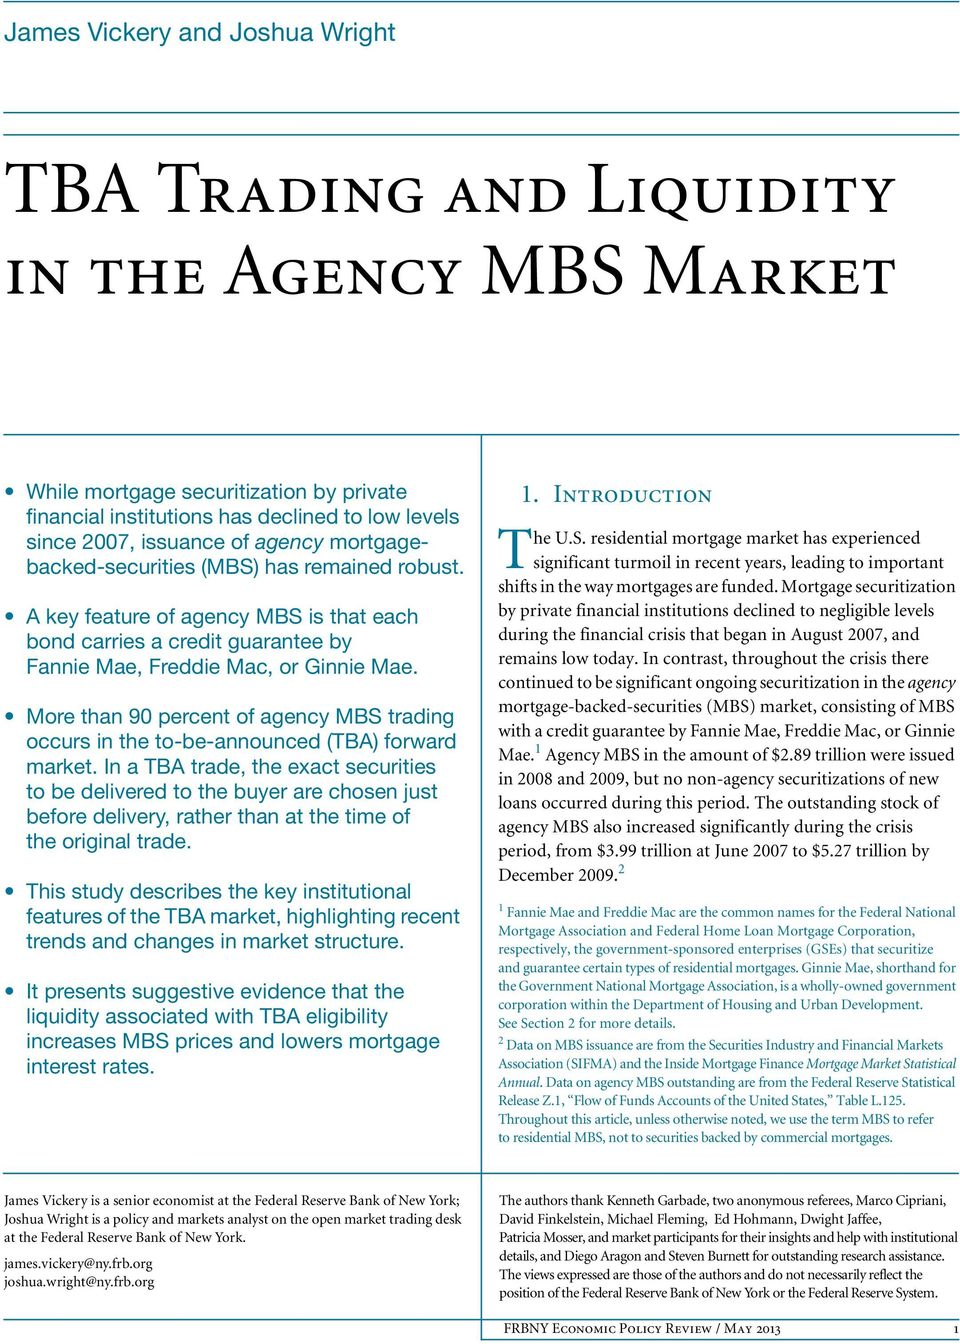 More than 90 percent of agency MBS trading occurs in the to-be-announced (TBA) forward market.